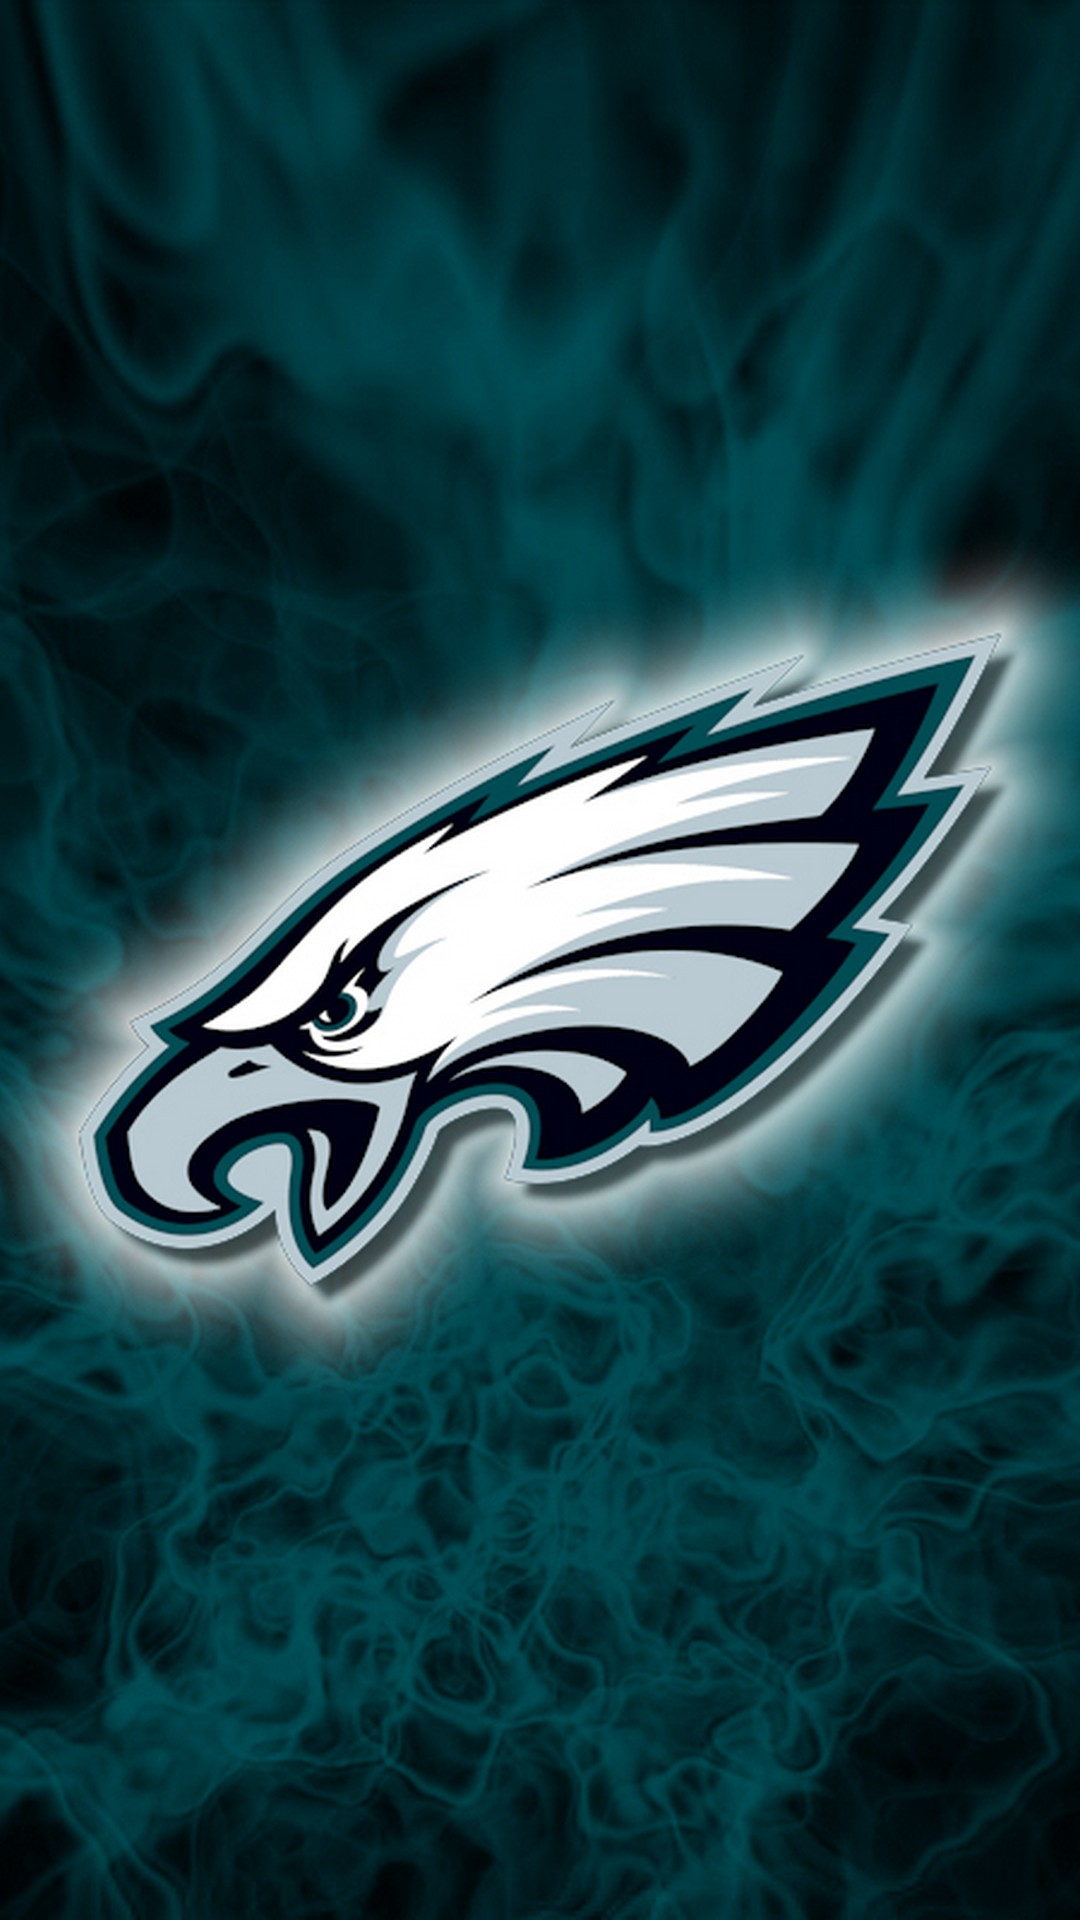 Philadelphia Eagles HD Wallpaper For iPhone with resolution 1080x1920 pixel. You can make this wallpaper for your Mac or Windows Desktop Background, iPhone, Android or Tablet and another Smartphone device